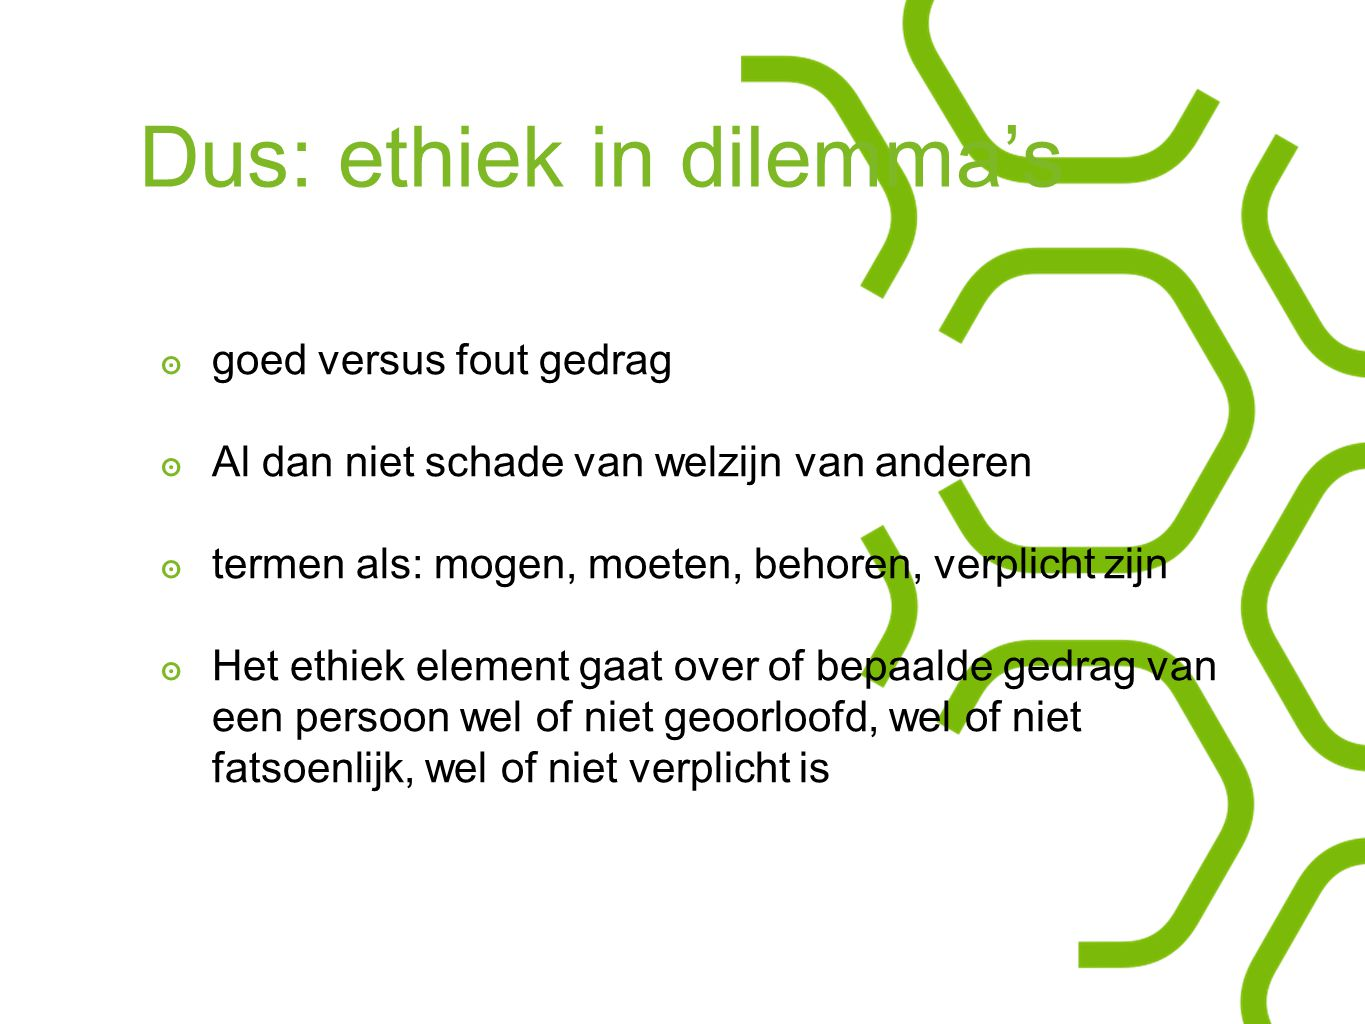 Dus: ethiek in dilemma's